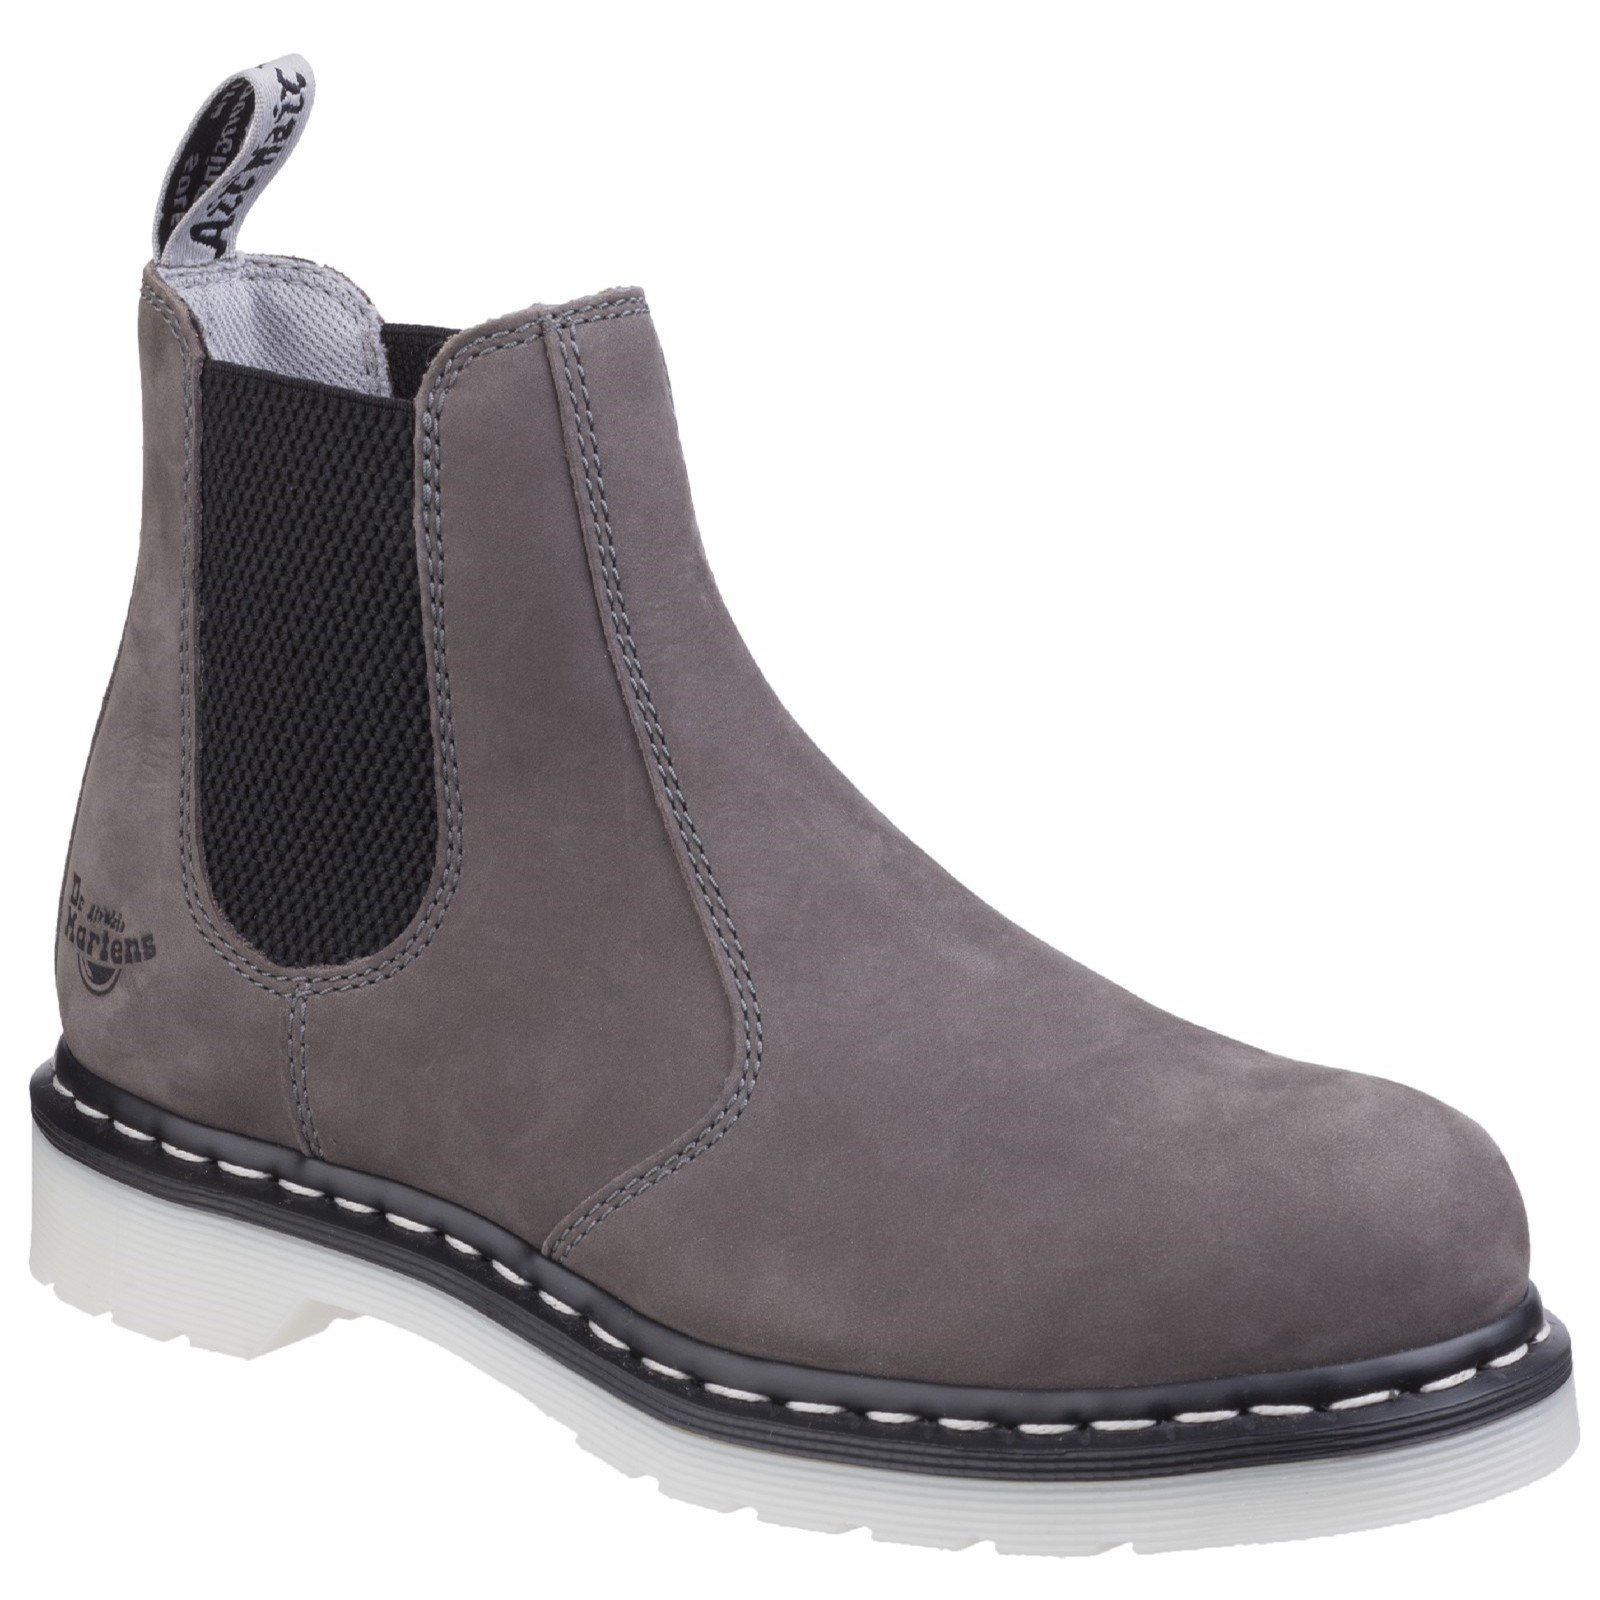 Dr Martens Women's Arbor Elastic Safety Boot Various Colours 29517 - Grey Wind River 4